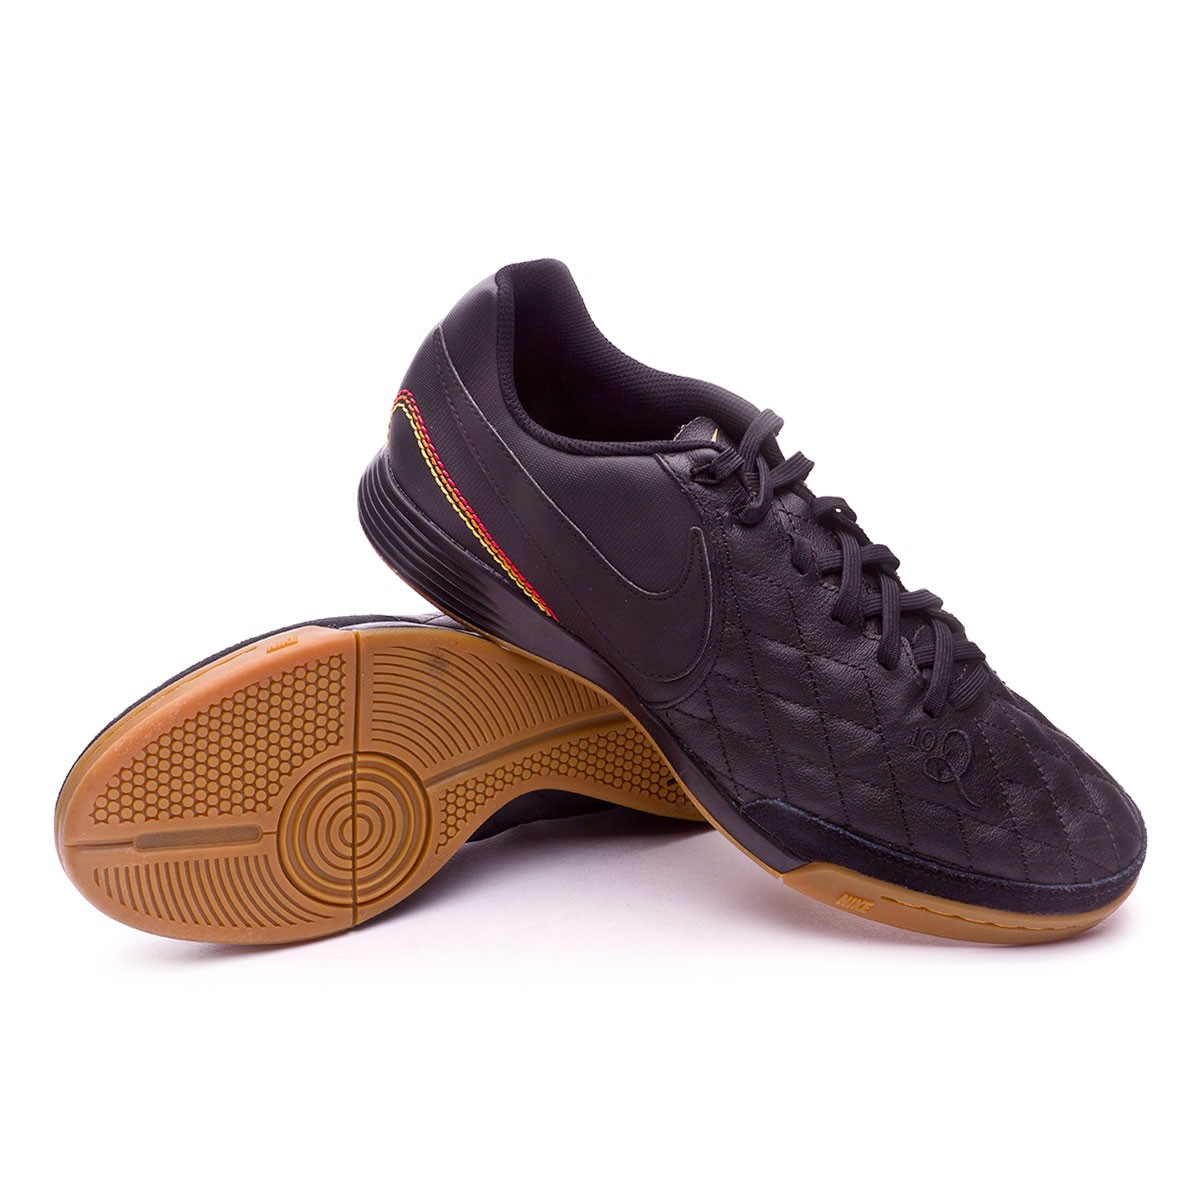 ... Zapatilla TiempoX Ligera IV 10R Paris IC Black-Metallic gold. CATEGORY